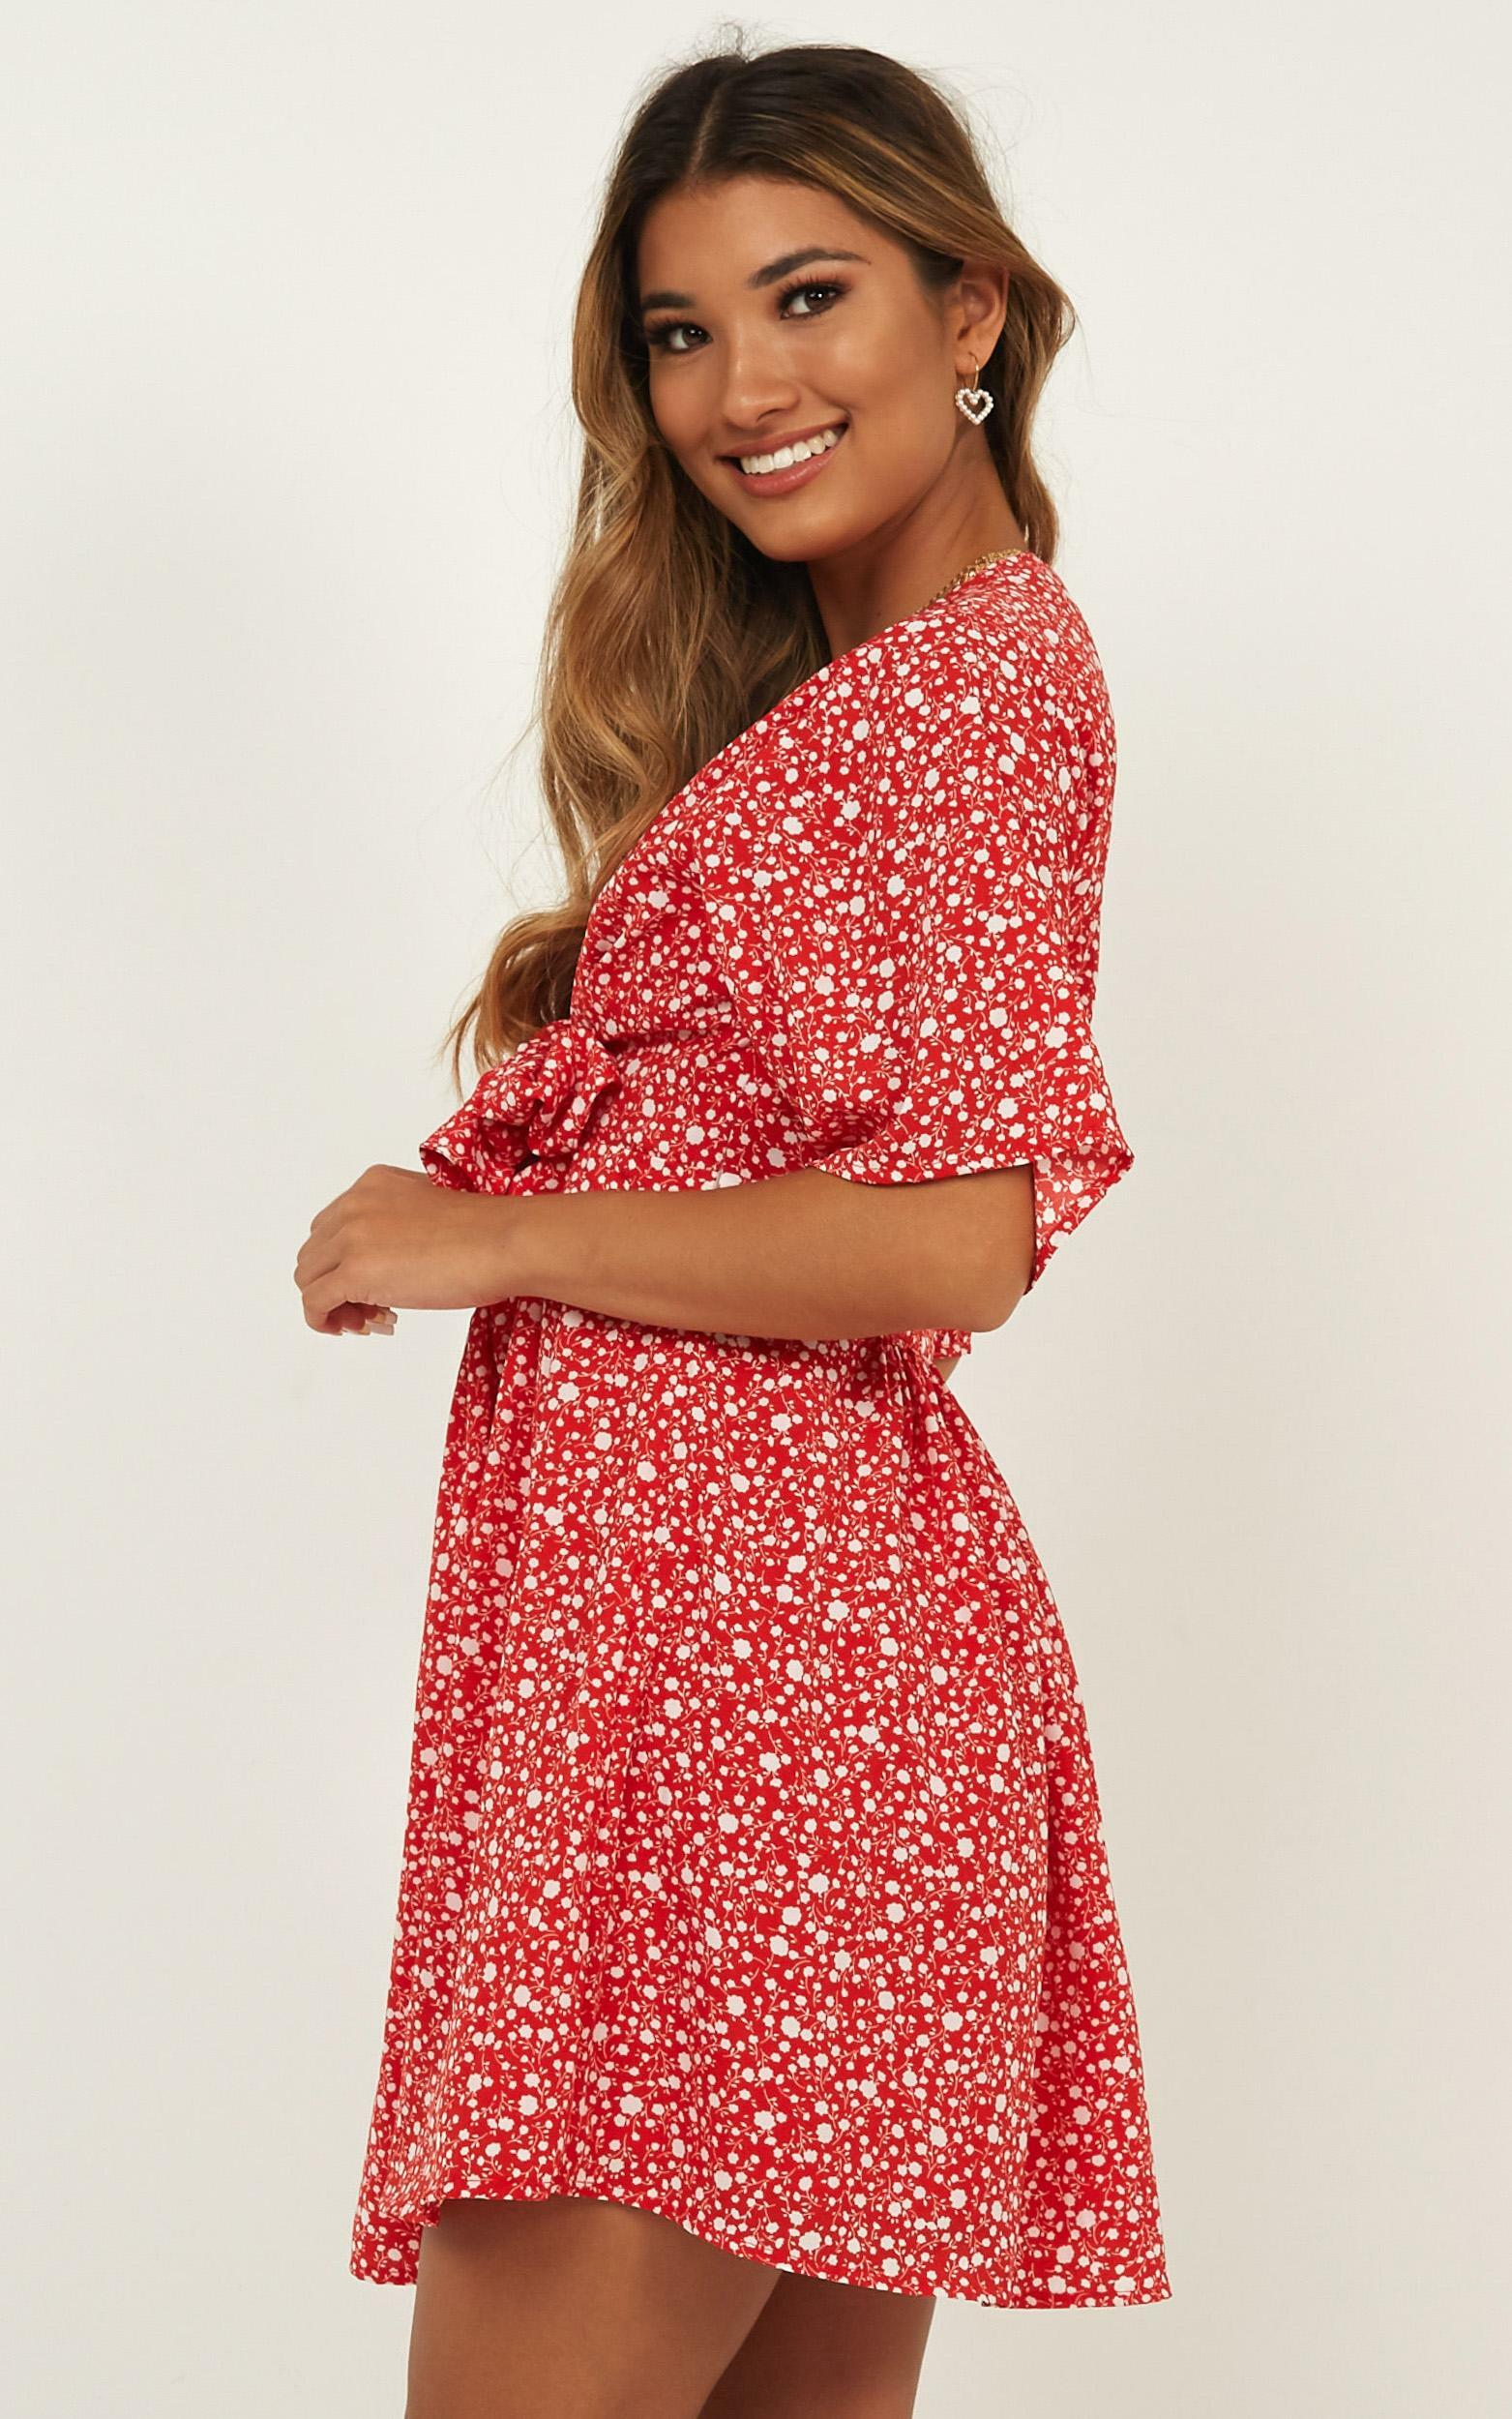 Dreaming About You Dress In Red Floral - 4 (XXS), Red, hi-res image number null